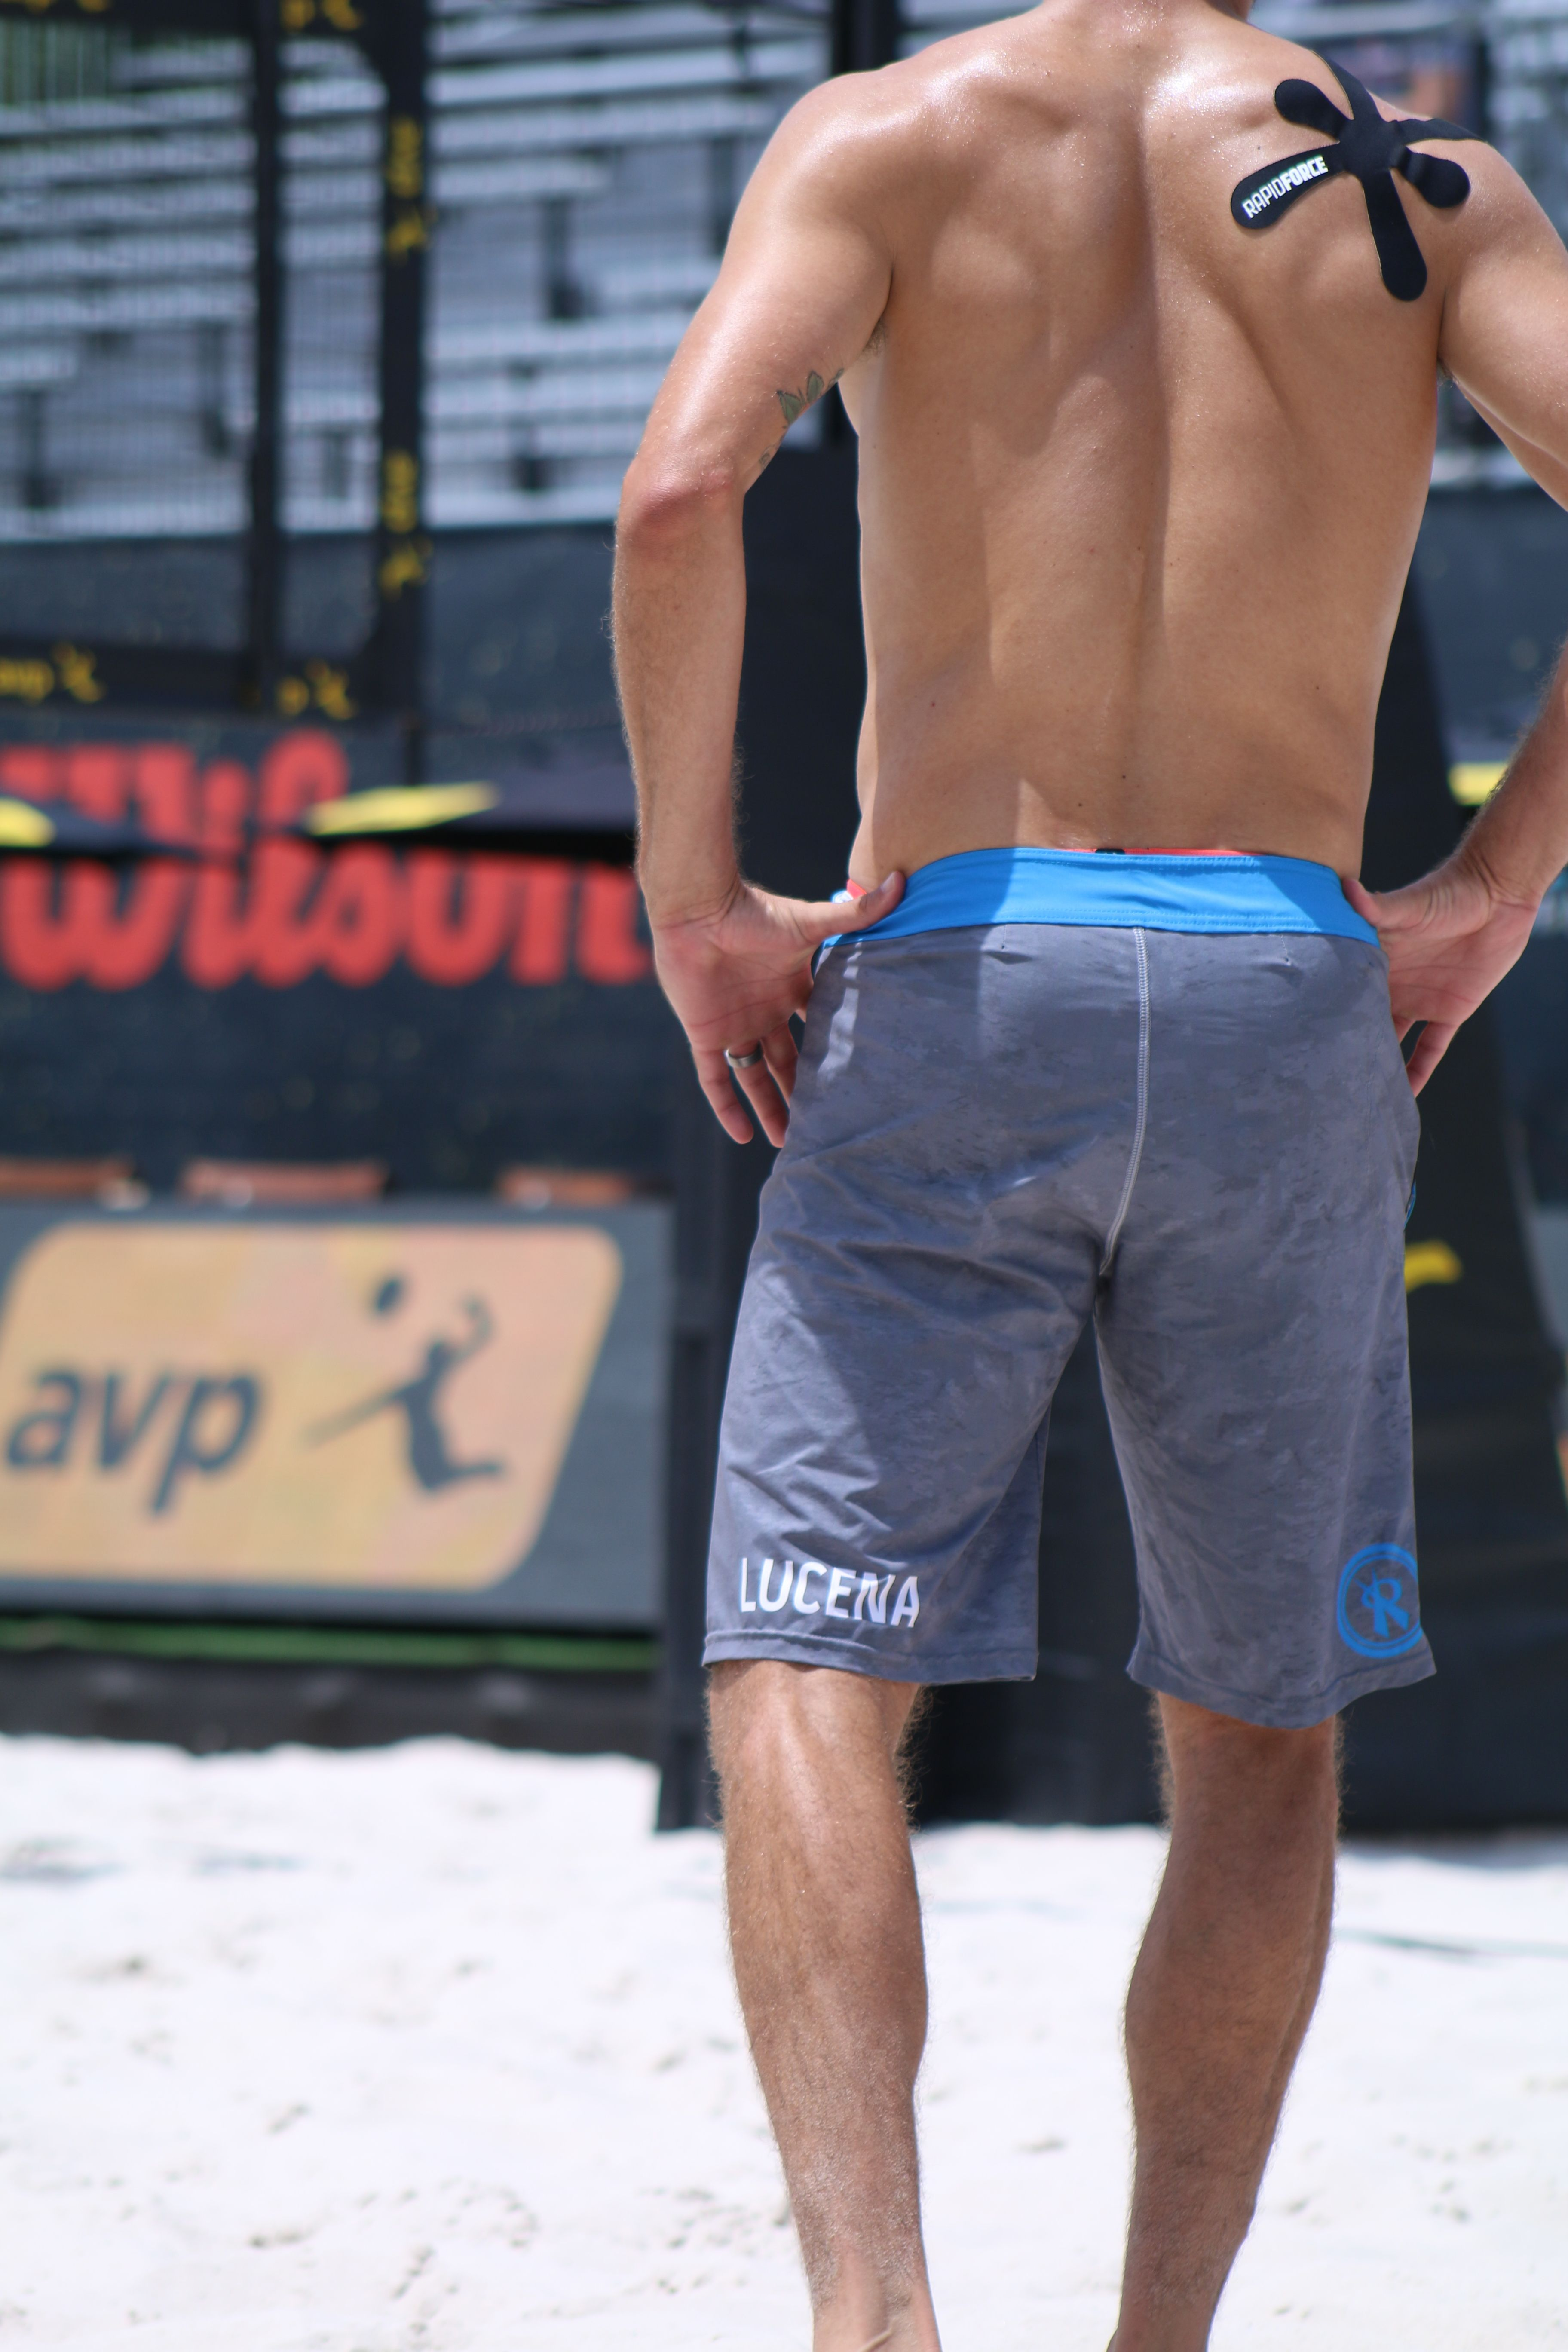 Want To Move Like Nick The Quick His Shorts Will Help You Board Shorts Mens Gym Short Volleyball Gear